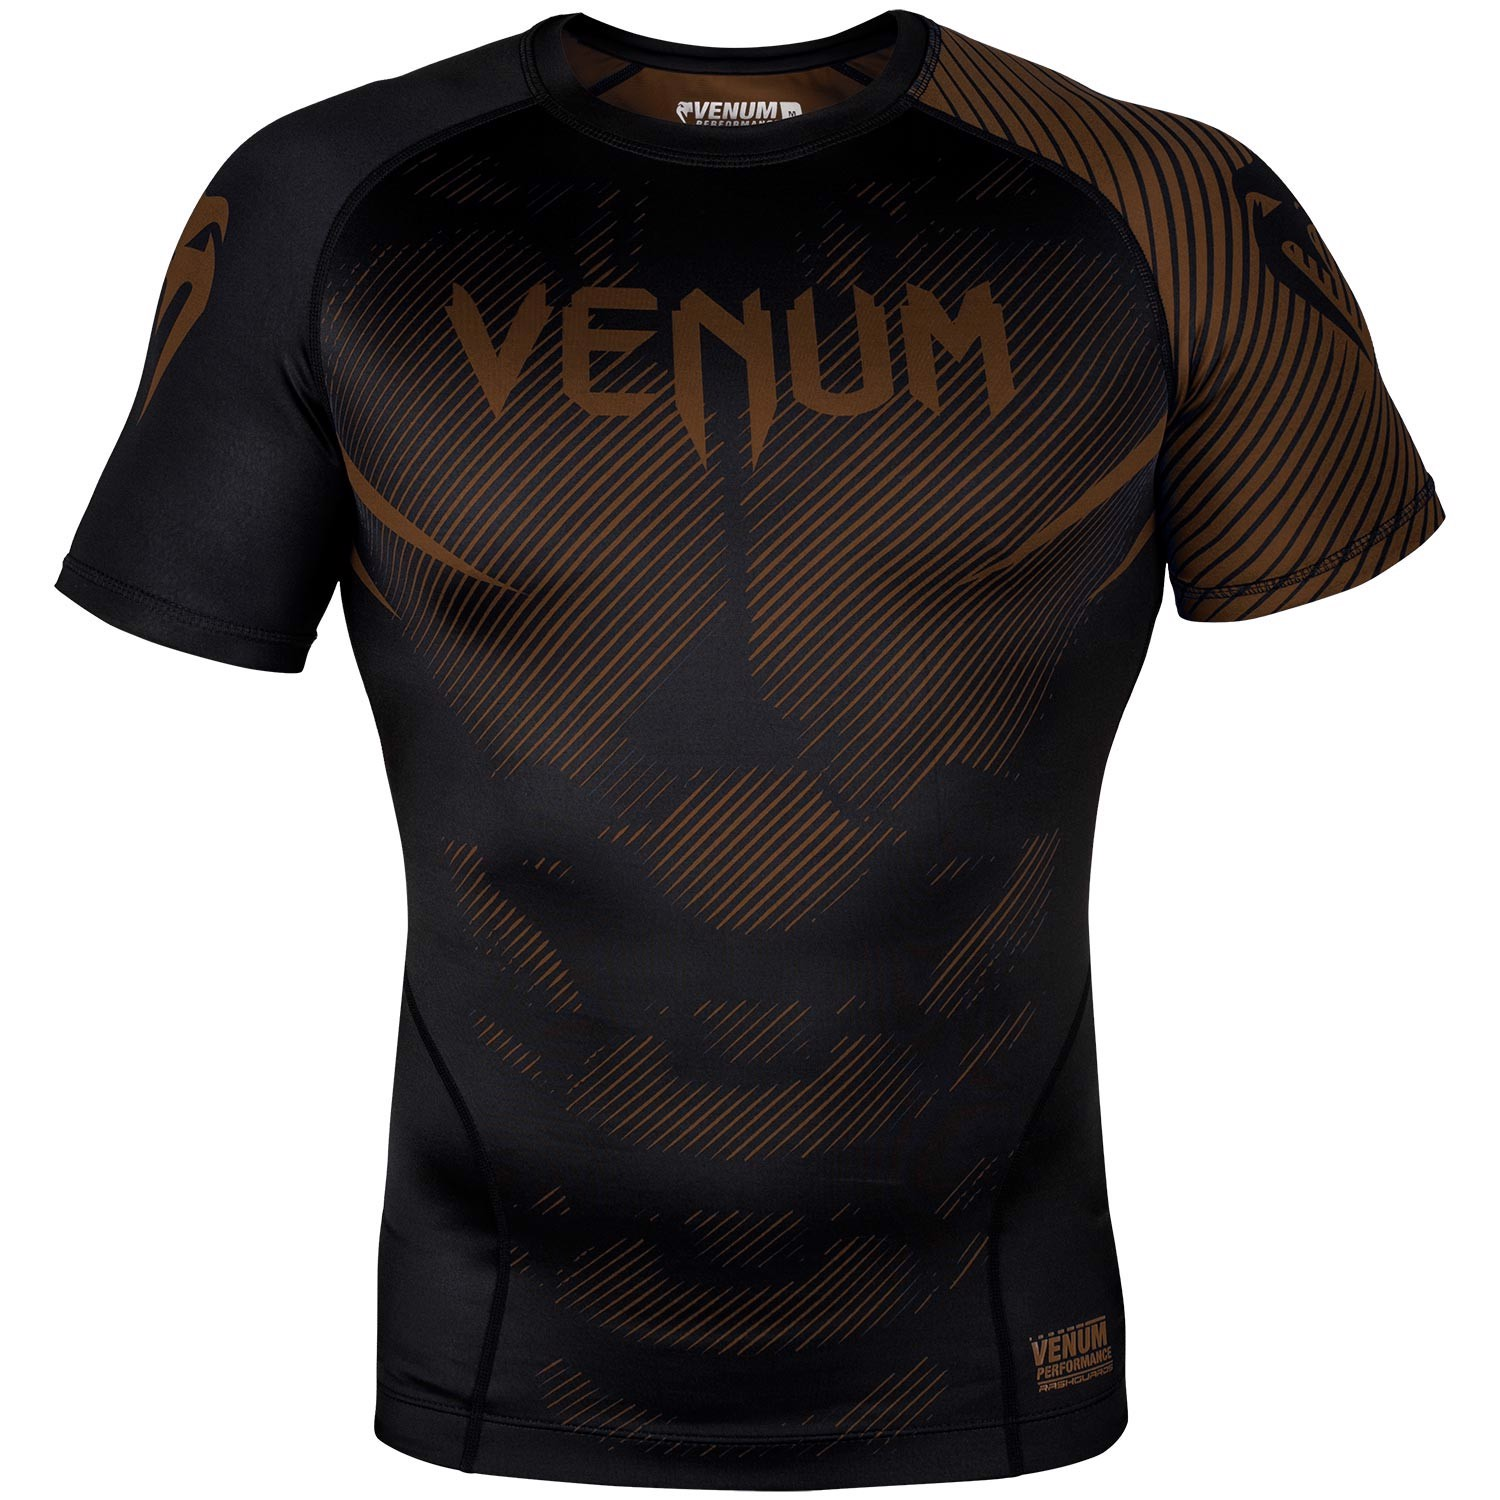 ÁO BÓ VENUM NOGI 2.0 RASHGUARD - SHORT SLEEVES - BLACK/BROWN